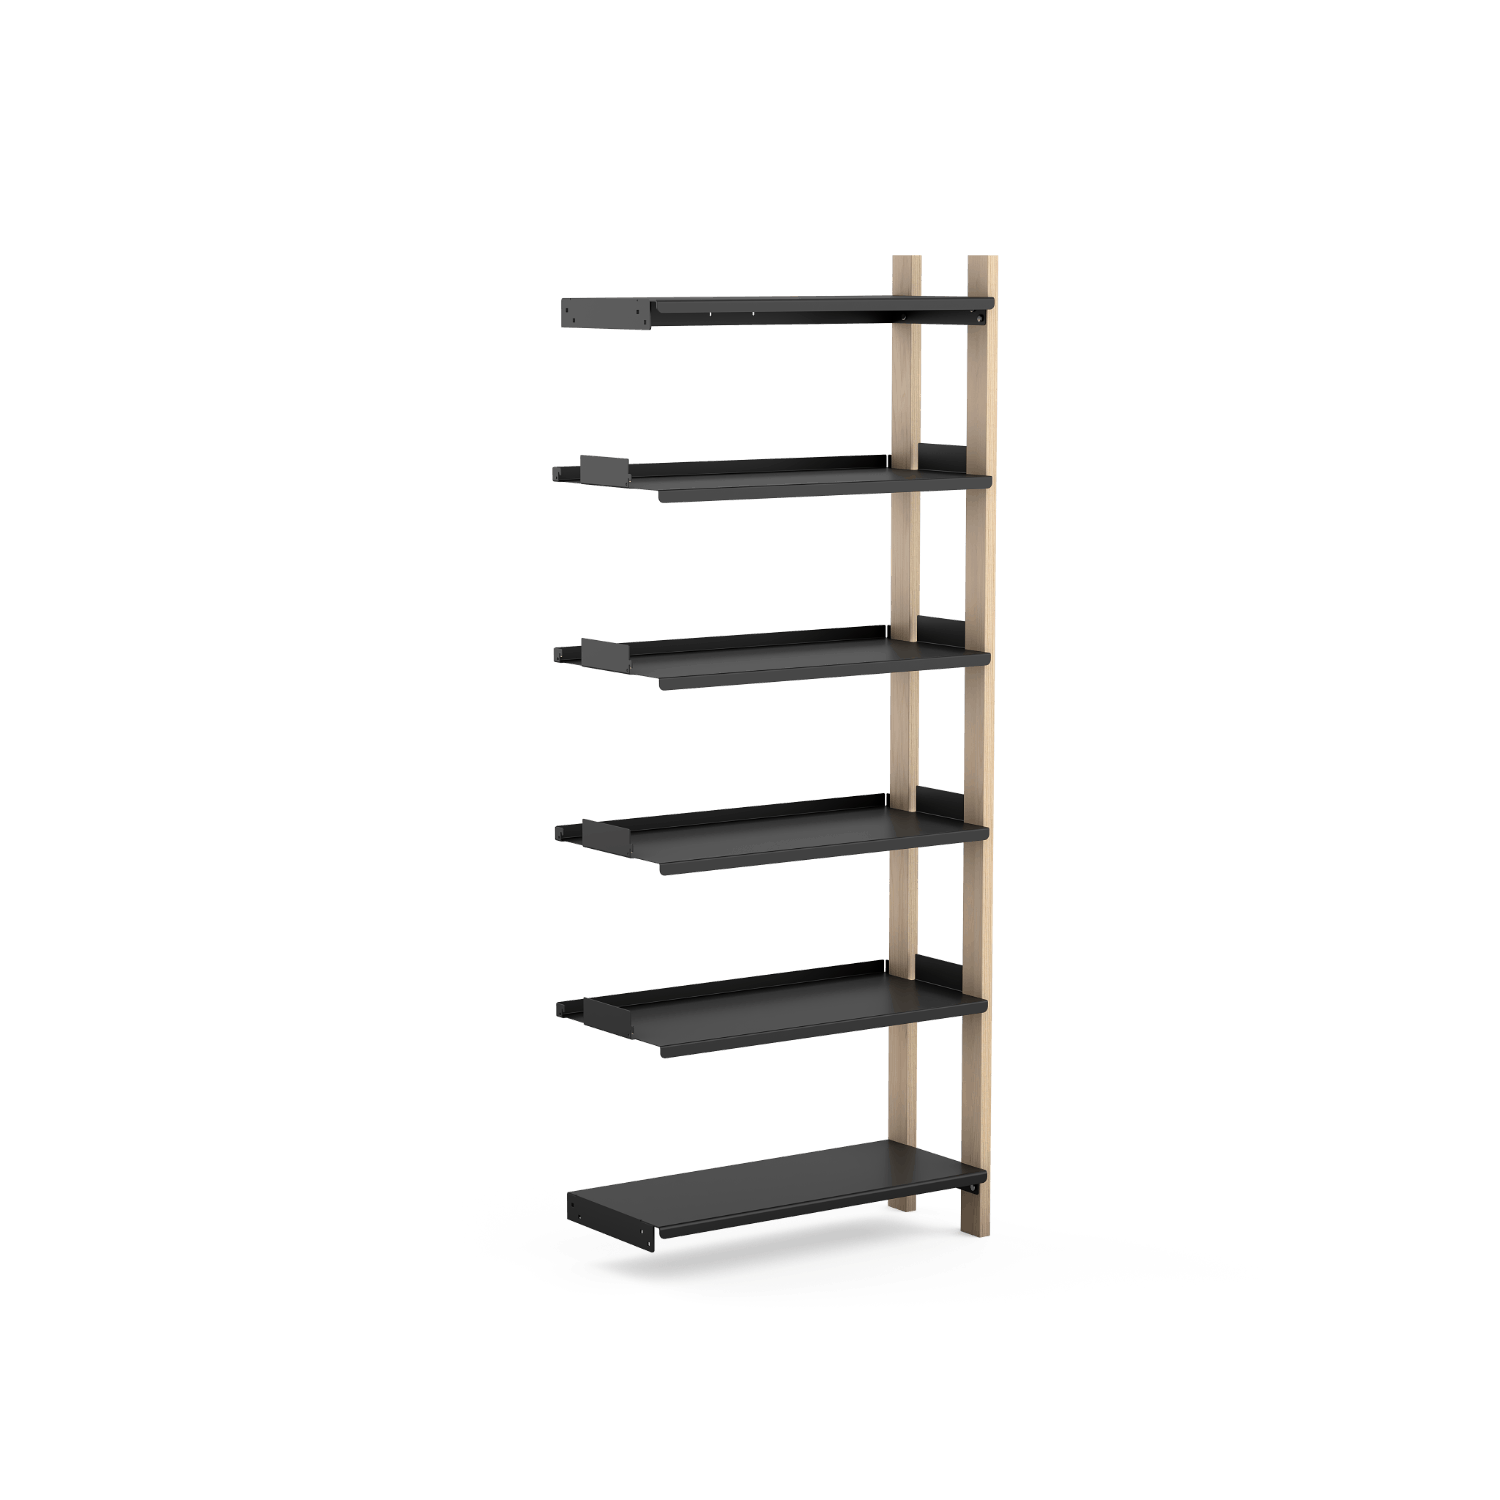 Tall Floyd Shelving System expansion unit rendering